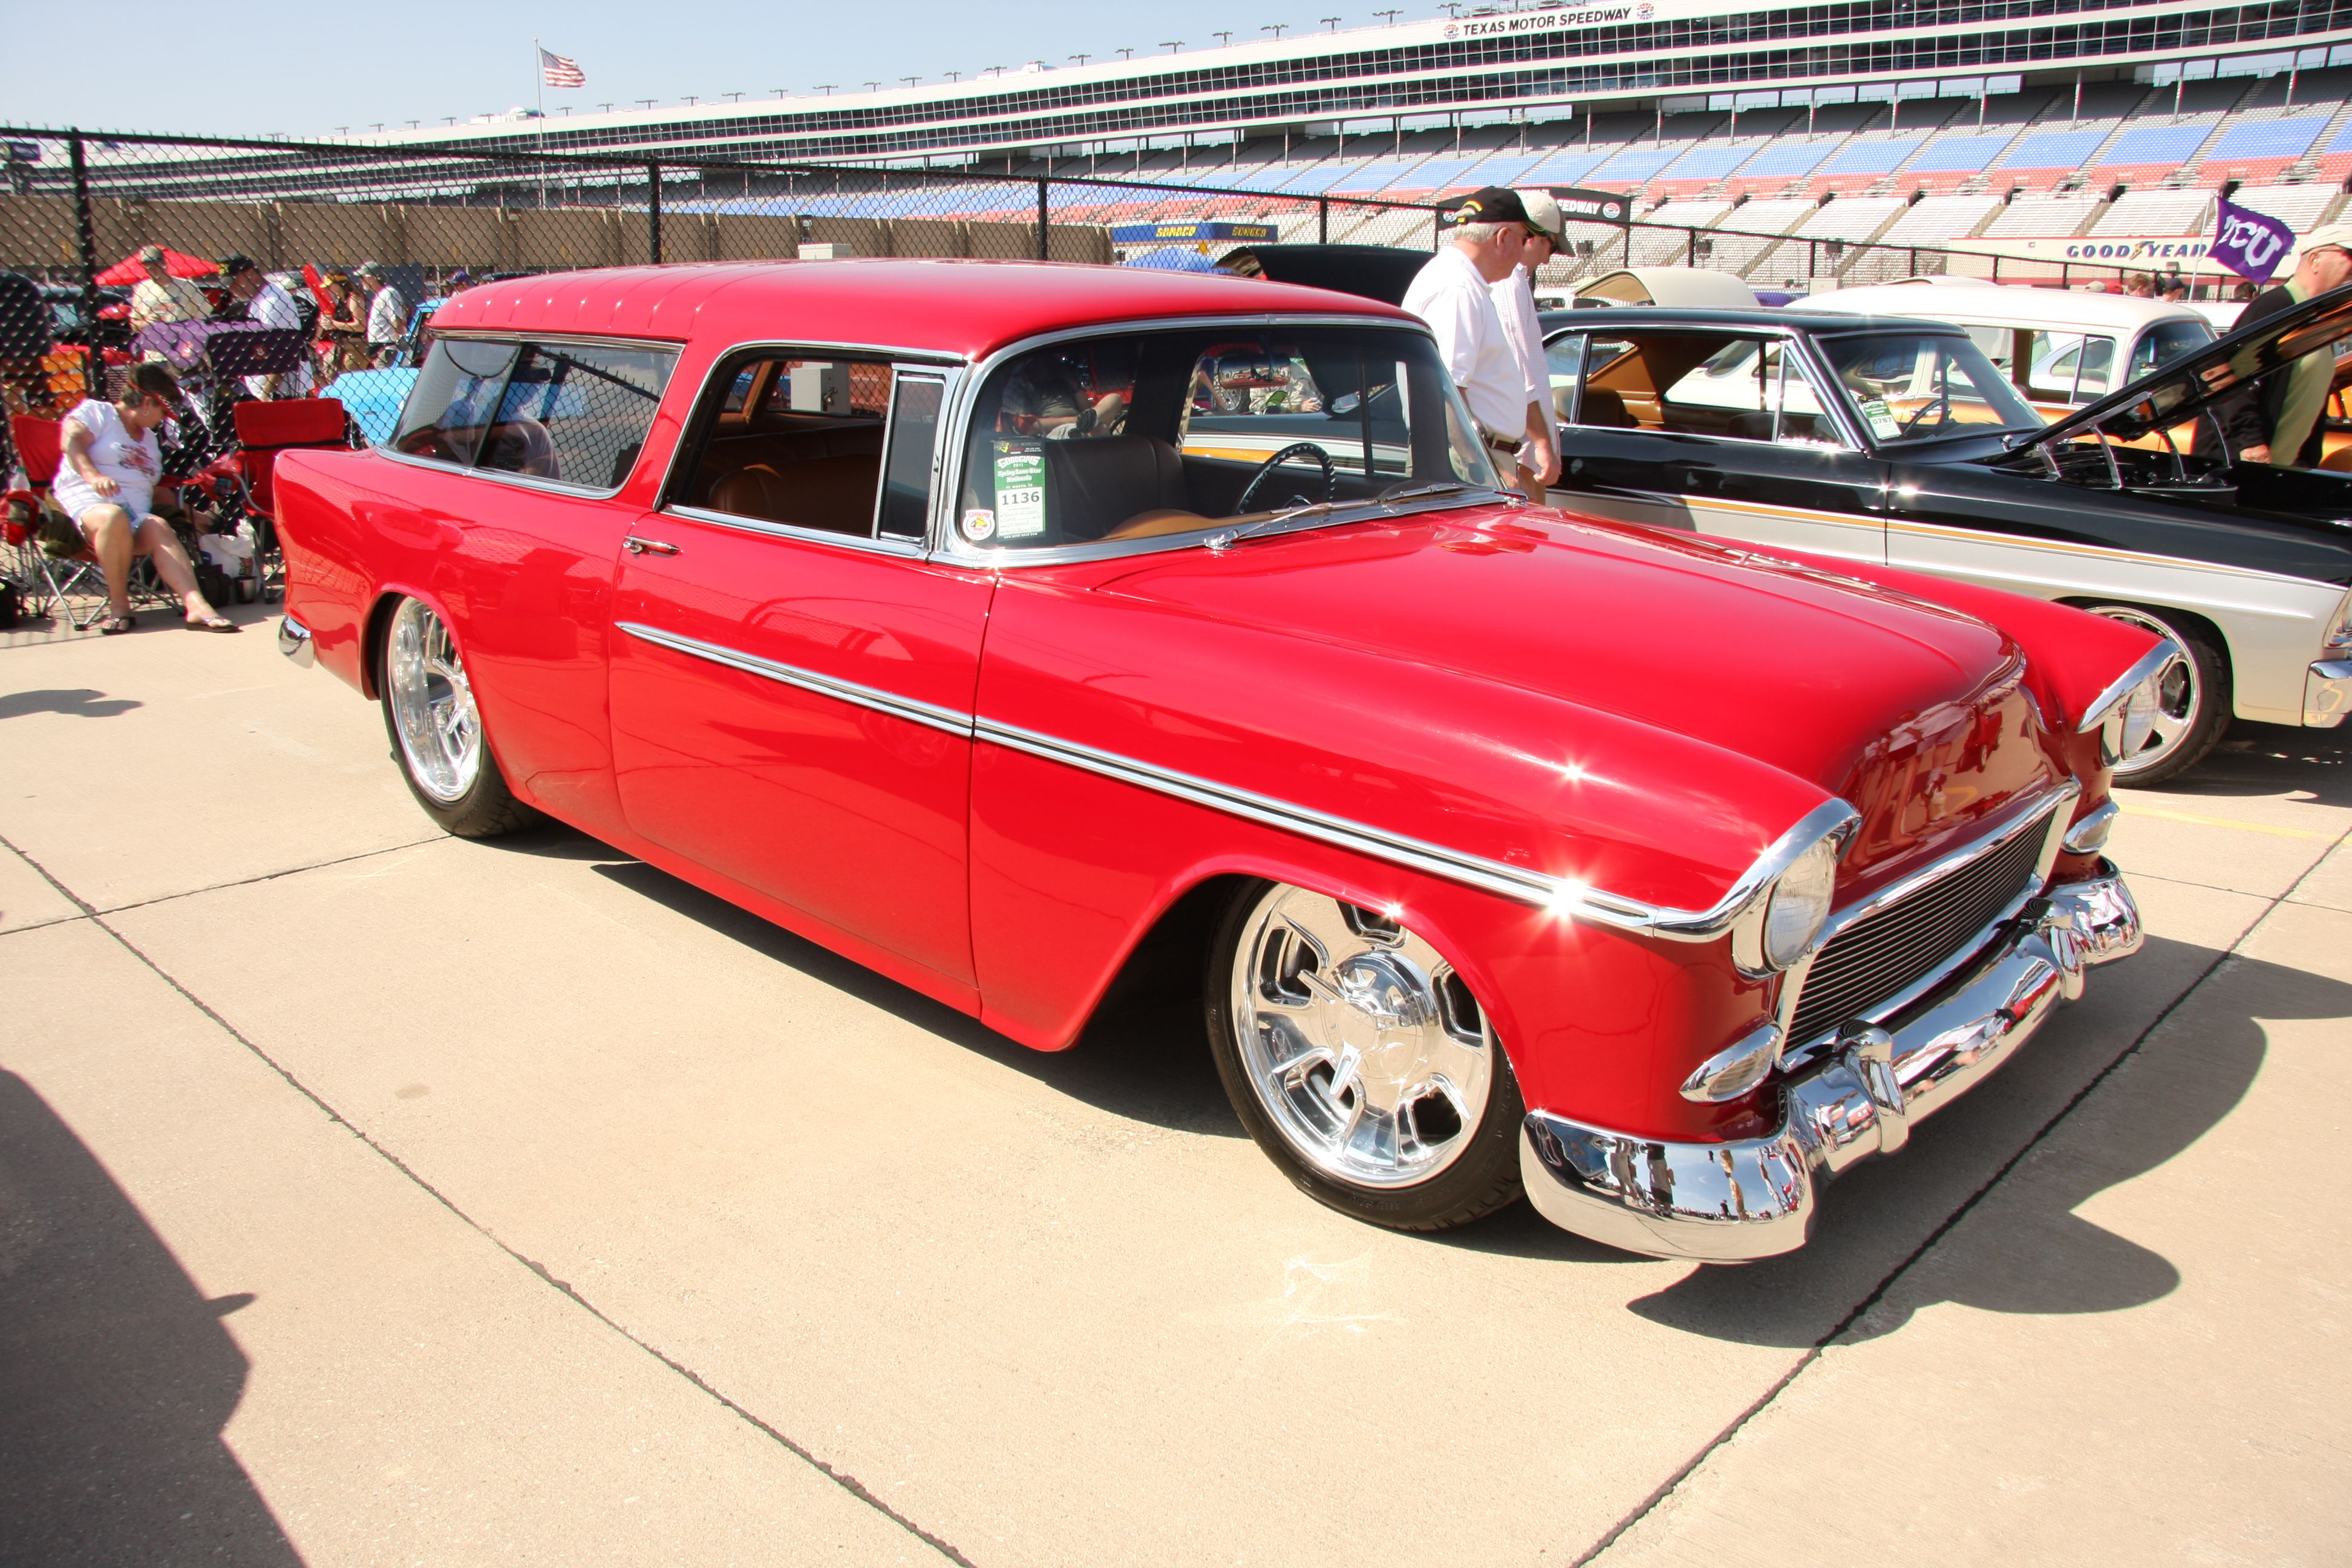 Chevy Nomad Resto Mod W Big Block Pwr Awesome American